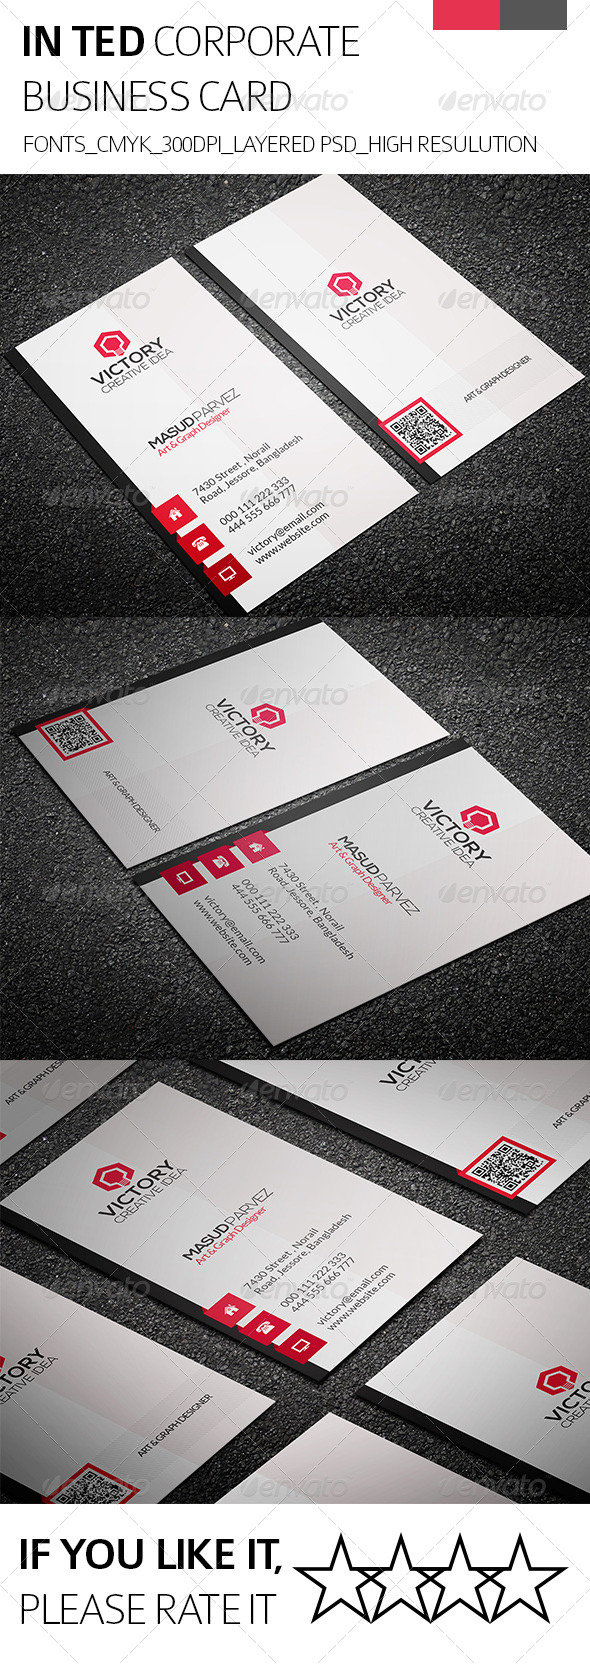 GraphicRiver Inted & Corporate Business Card 8343342